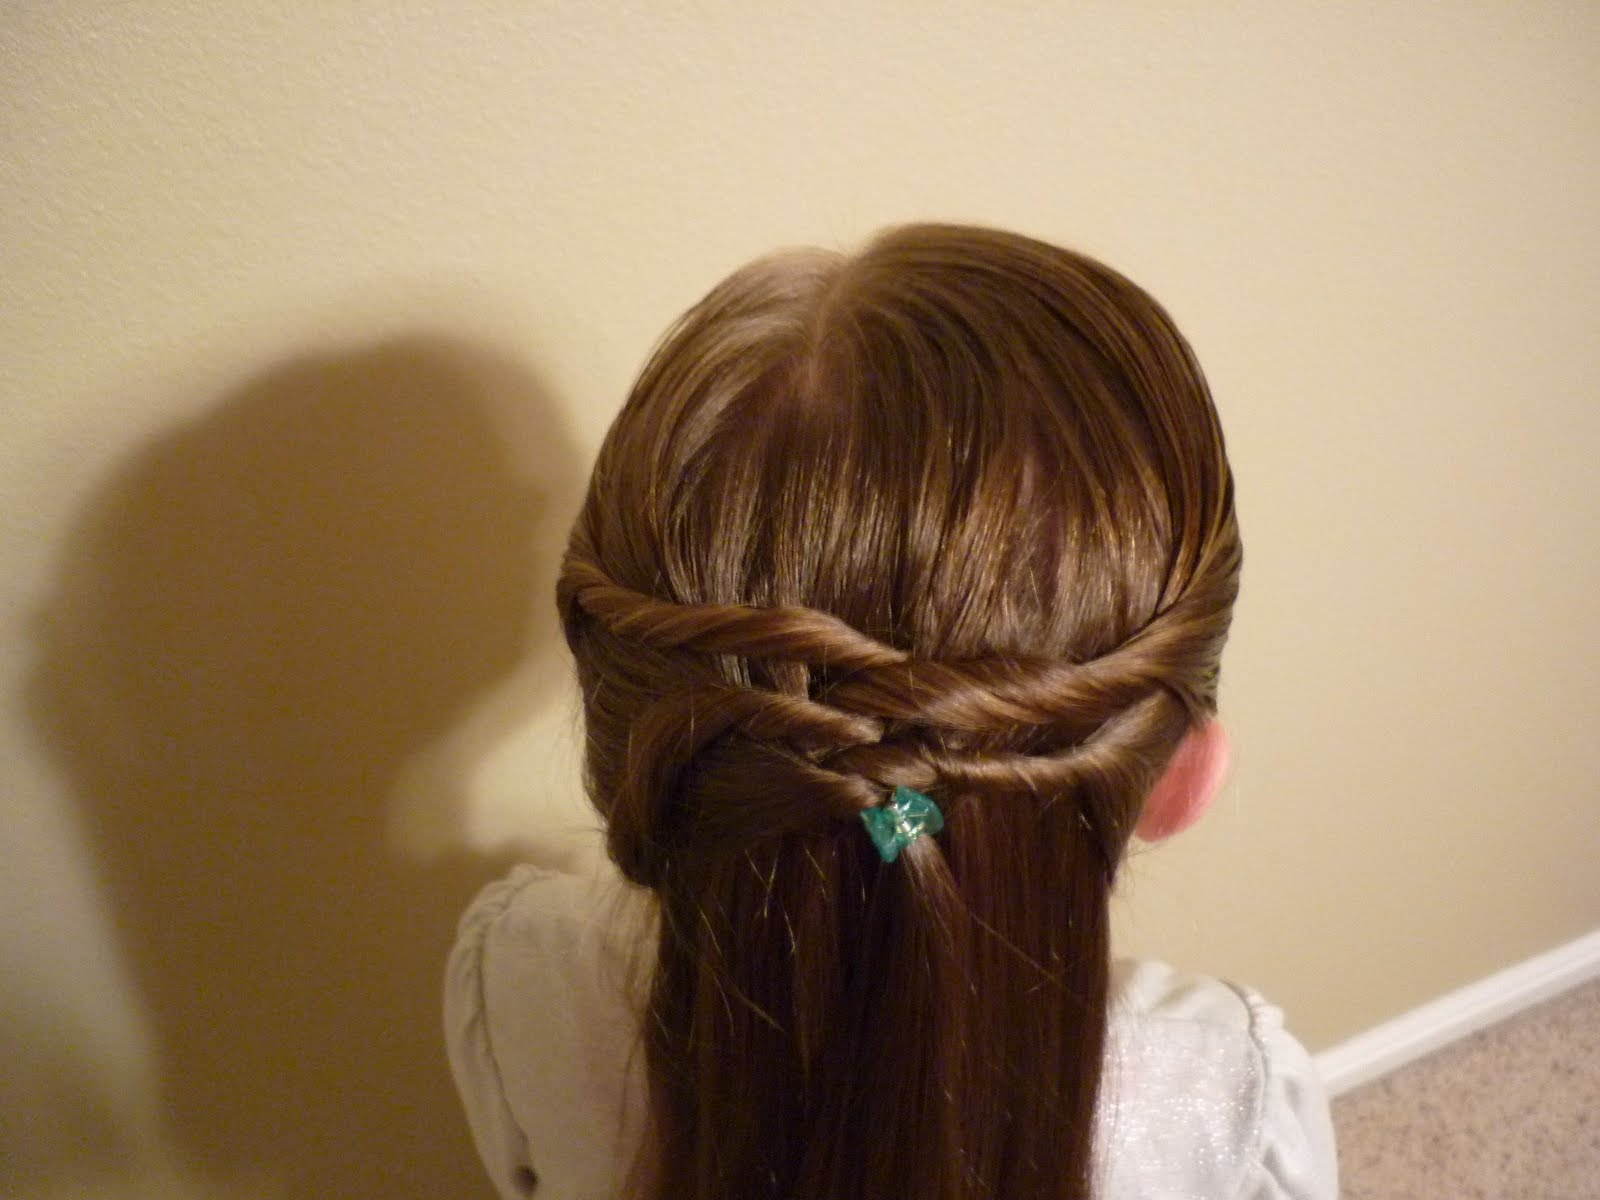 Girl Hairstyles Quick And Easy: A Quick And Easy Twisty Hairdo